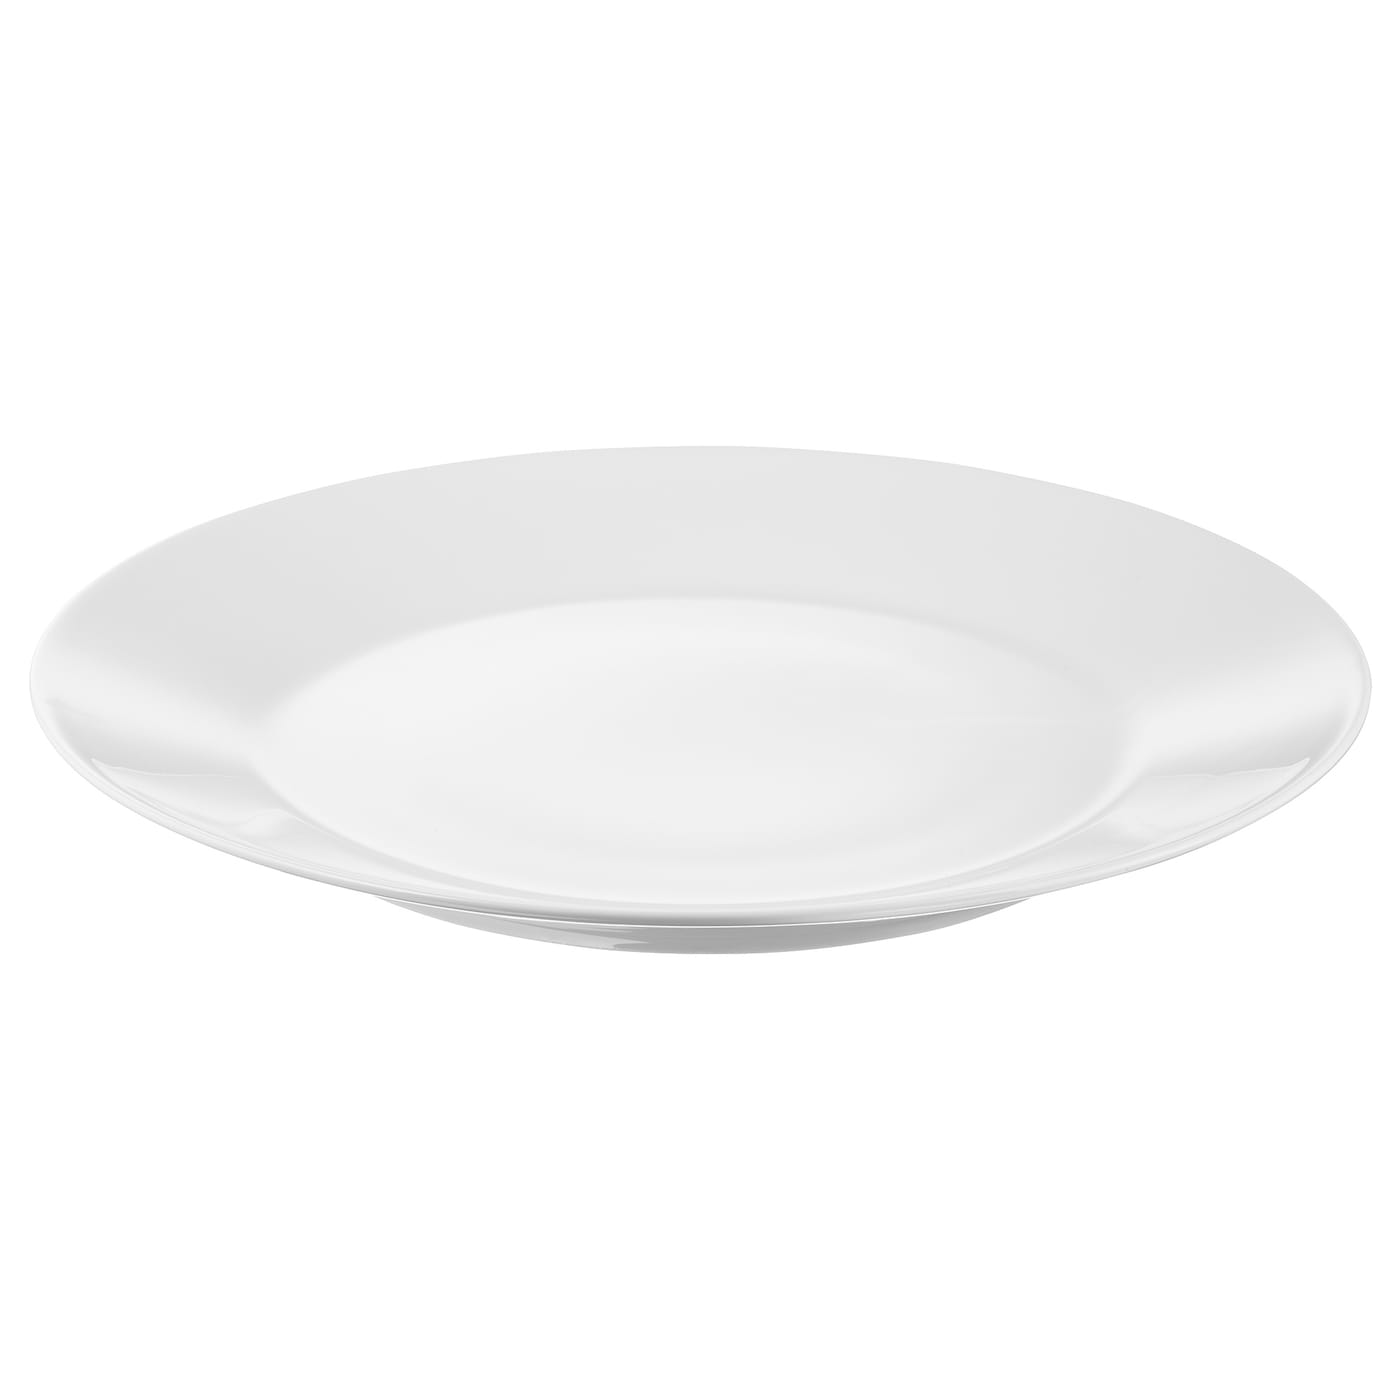 IKEA IKEA 365+ plate Made of feldspar porcelain, which makes the plate impact resistant and durable.